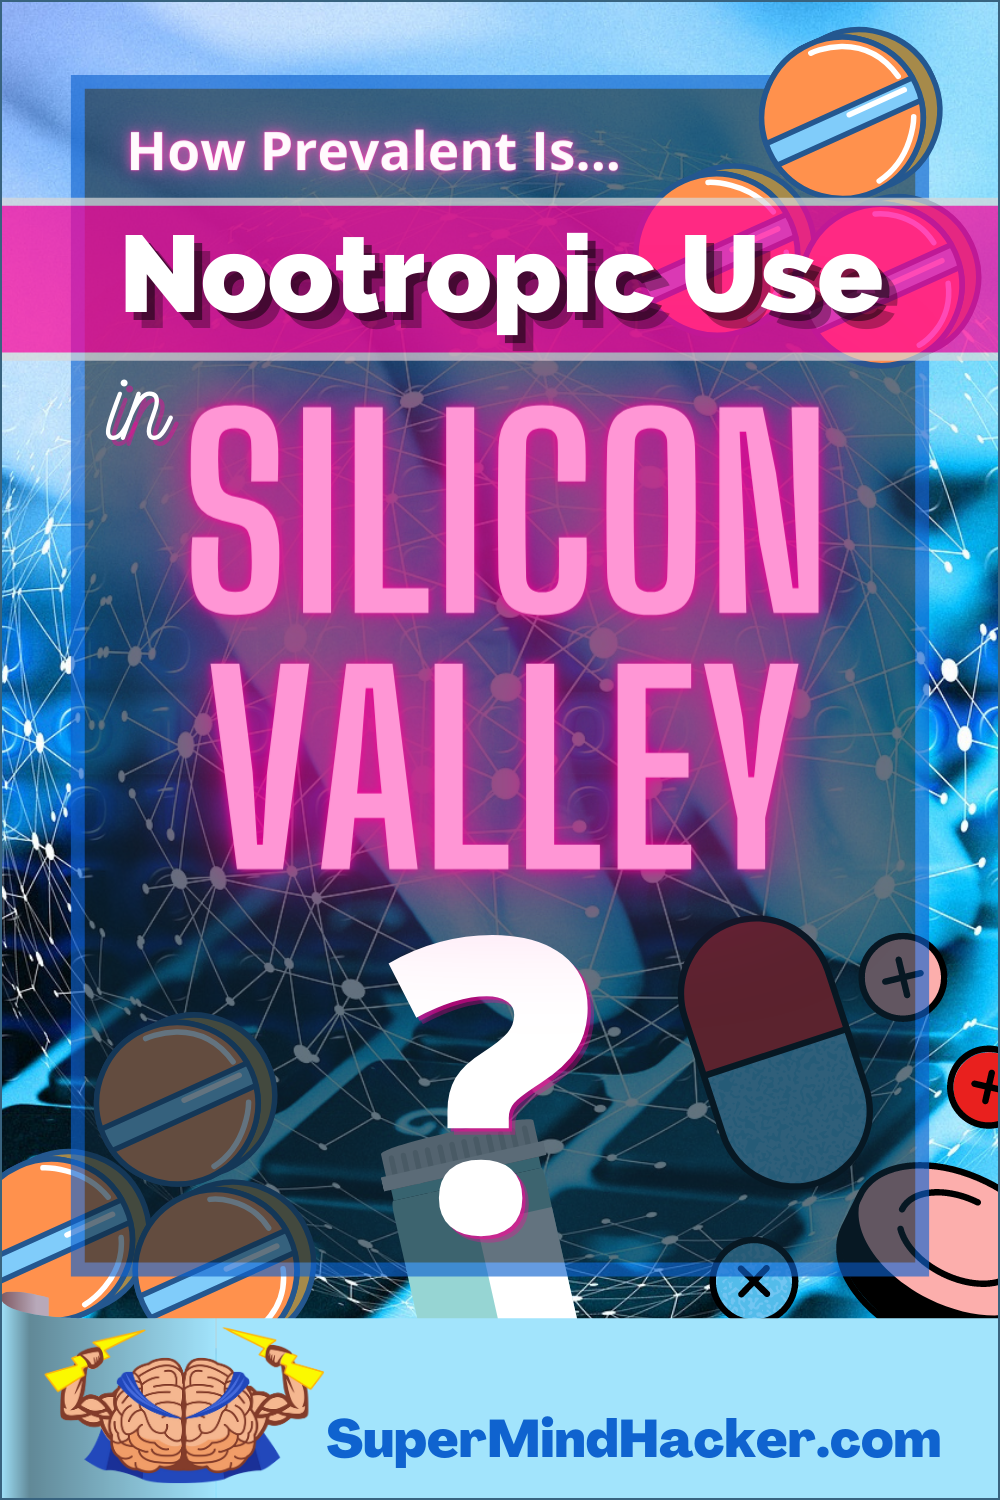 How Prevalent is Nootropics Usage in Silicon Valley?